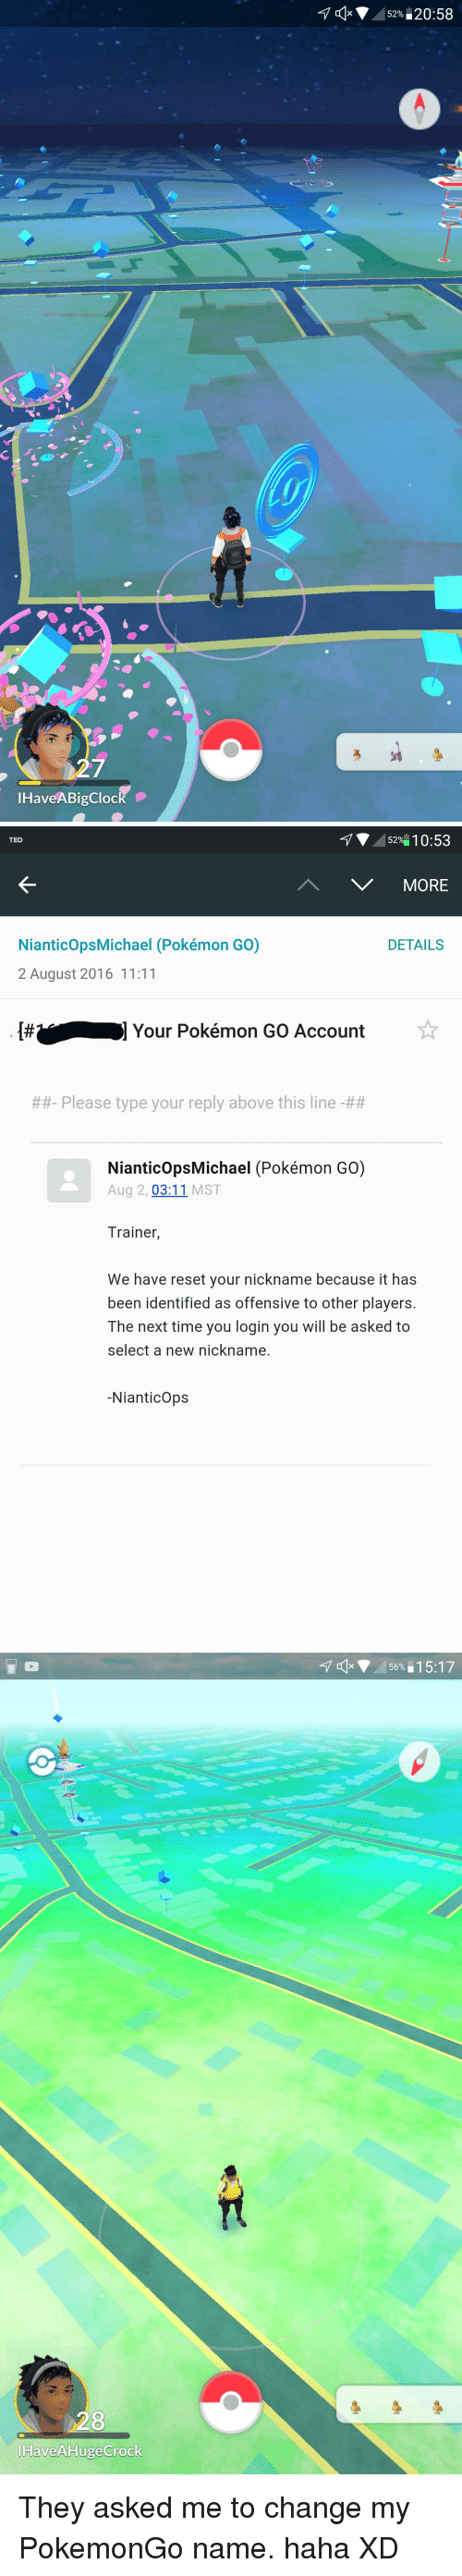 Pokemon, Ted, and Time: HaveABigClock  c 52%  20:58   52%  10:53  TED  V MORE  NianticopsMichael (Pokémon GO)  DETAILS  2 August 2016 11:11  Your Pokémon GO Account  Please type your reply above this line  NianticopsMichael (Pokémon GO)  Aug 2  03:11  MST  Trainer  We have reset your nickname because it has  been identified as offensive to other players.  The next time you login you will be asked to  select a new nickname.  Nianticops   Have AHugeCrock  4 a x 56%  15:17 They asked me to change my PokemonGo name. haha XD